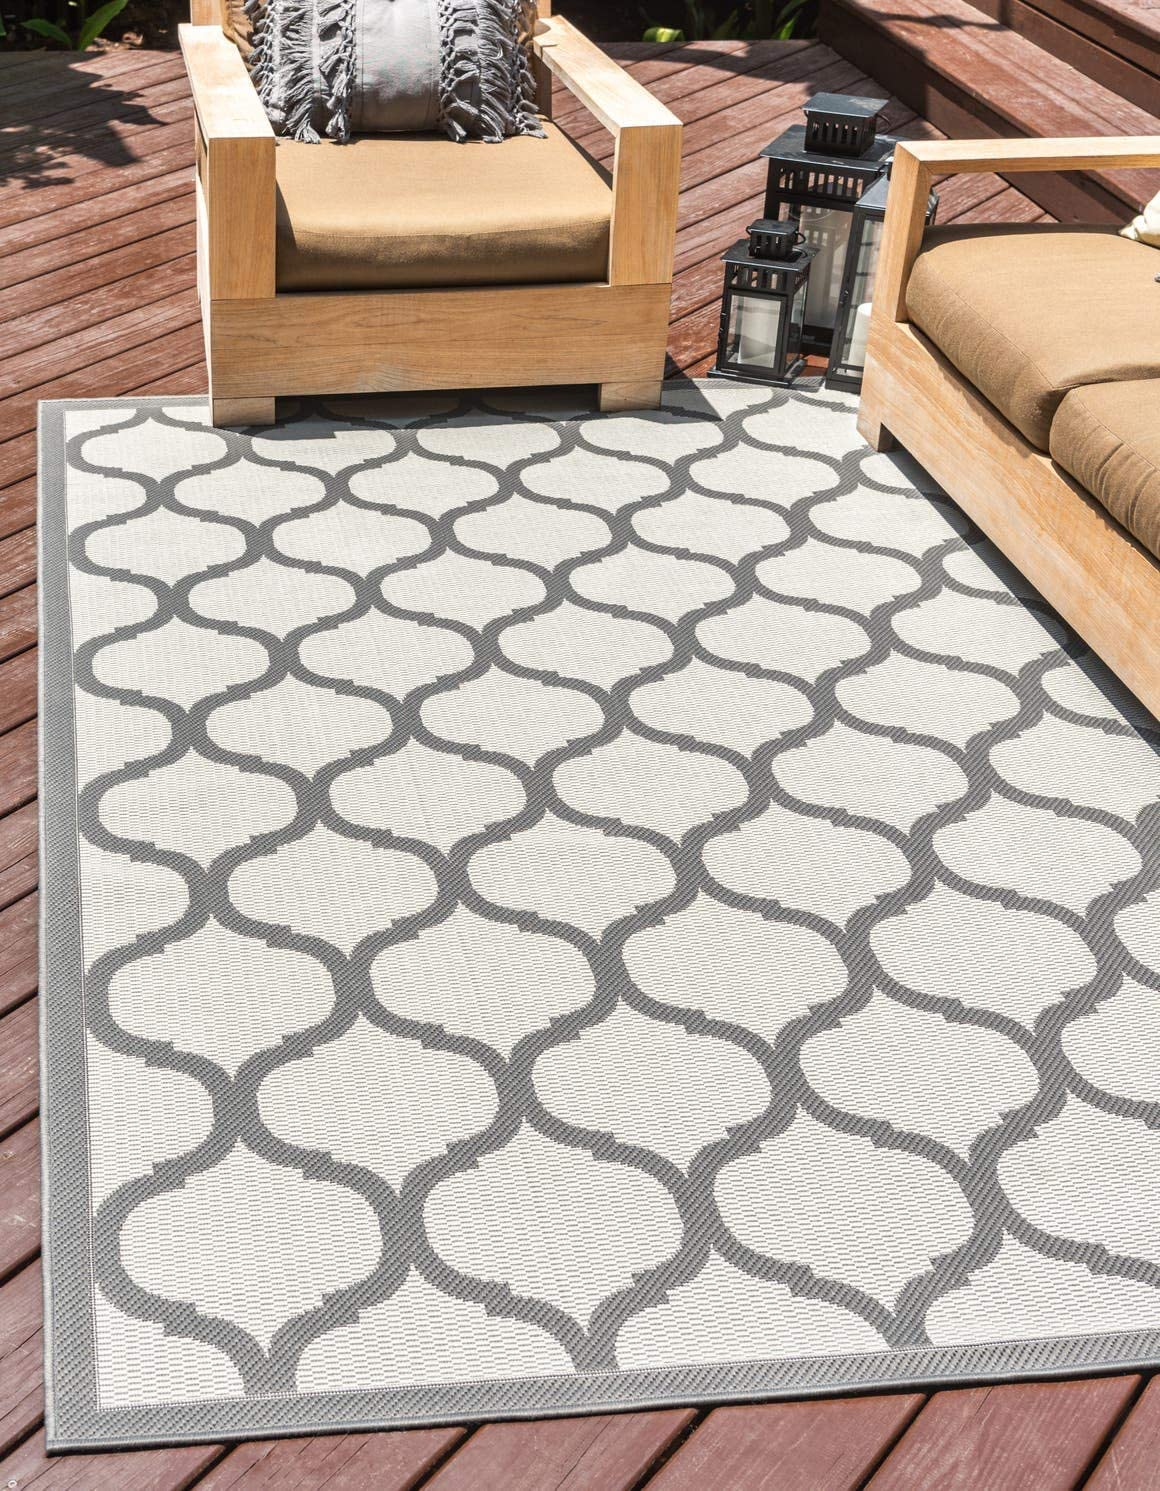 Unique Loom Outdoor Trellis Collection Lattice Border Transitional Indoor and Outdoor Flatweave Gray Charcoal Area Rug 2 2 x 3 0